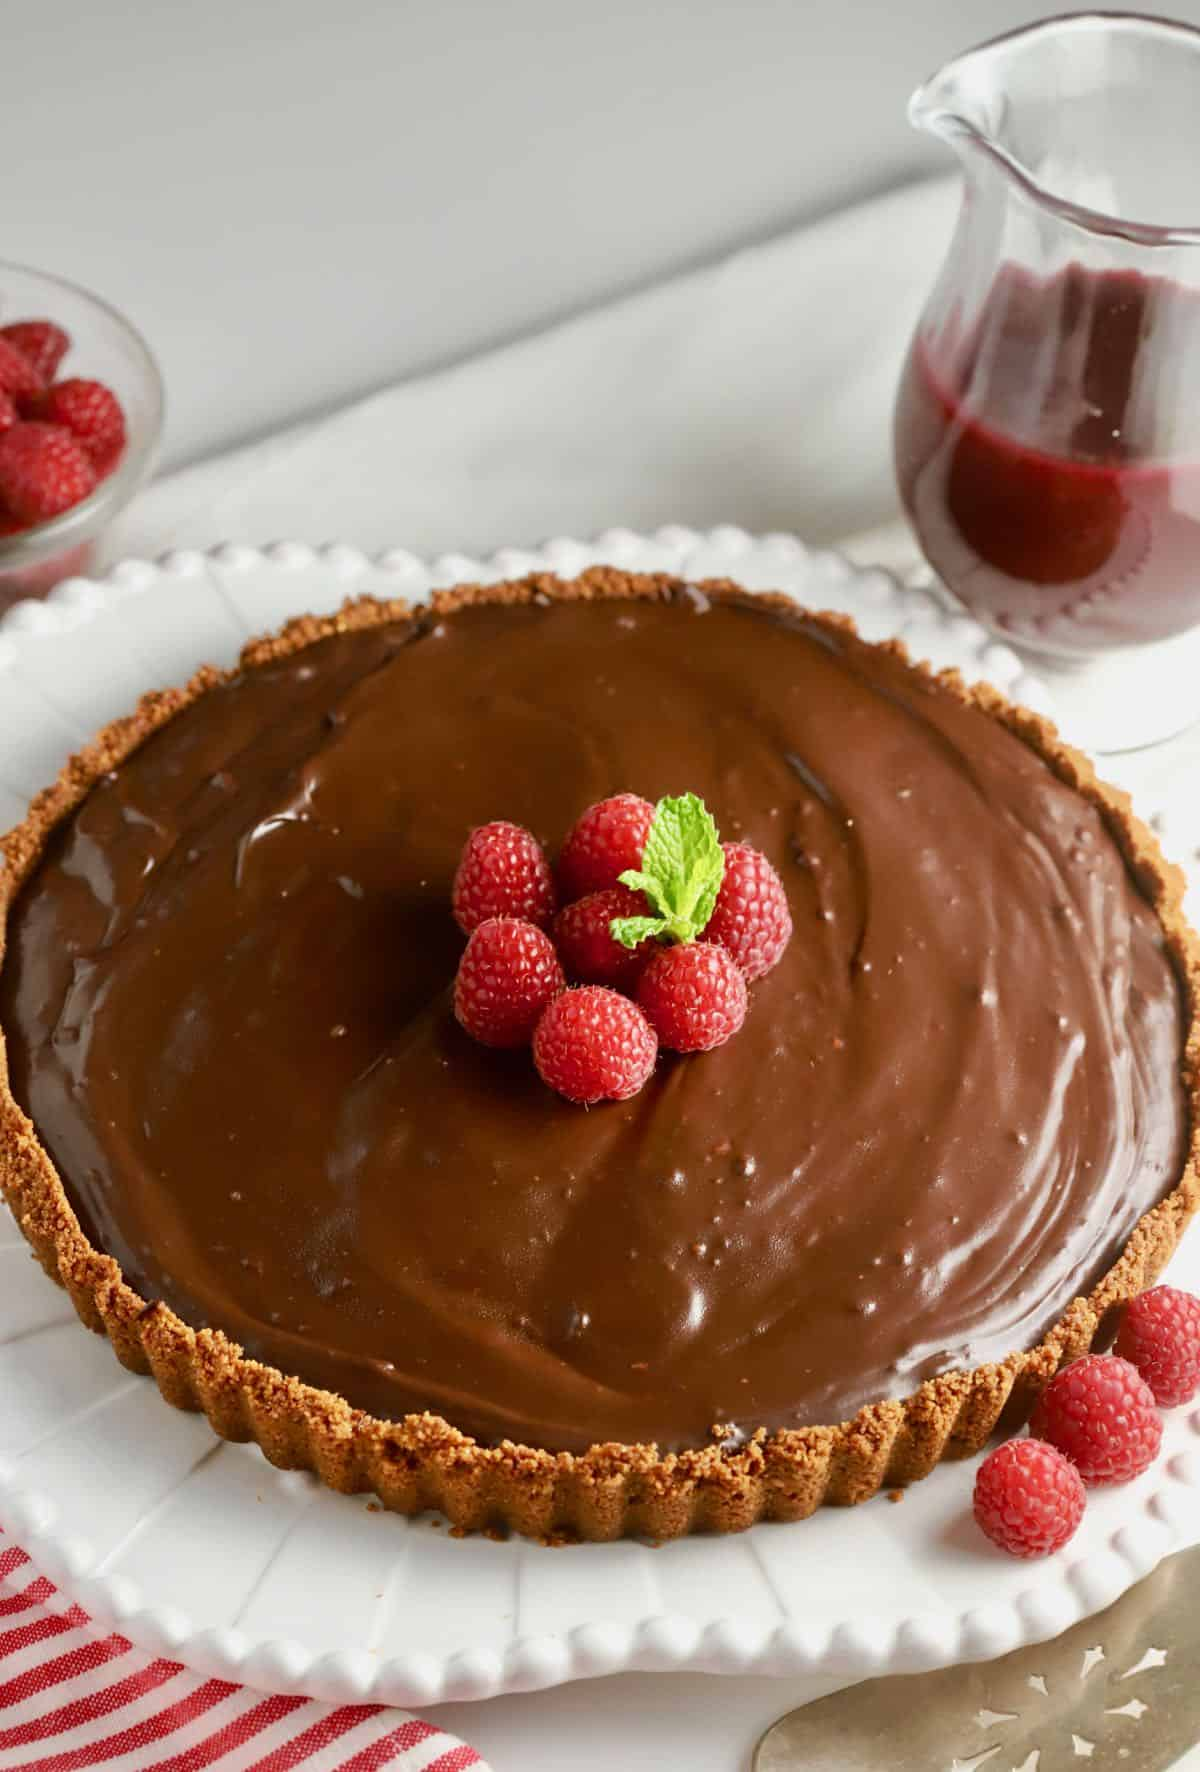 A chocolate ganache tart on a serving platter garnished with raspberries.